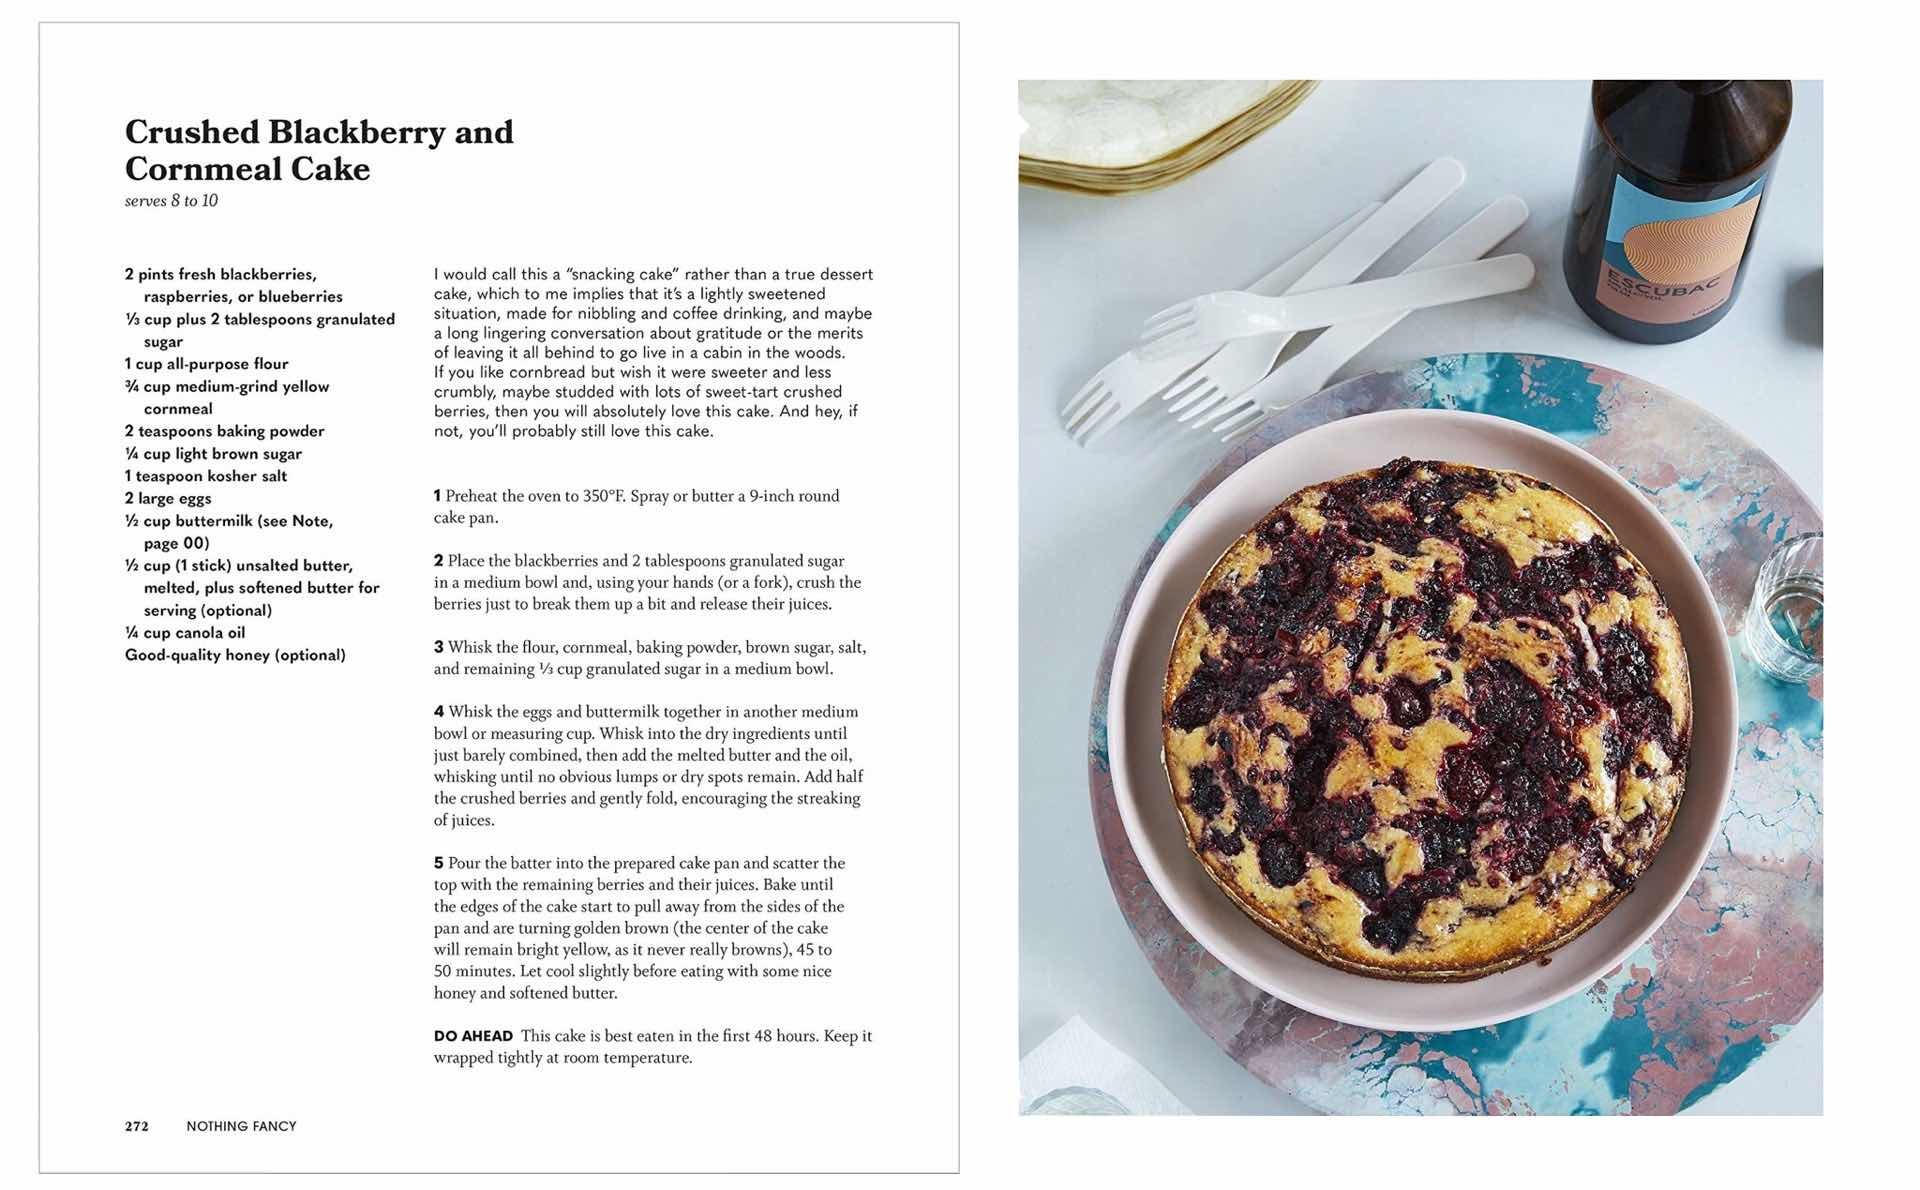 nothing-fancy-cookbook-by-alison-roman-crushed-blackberry-and-cornmeal-cake